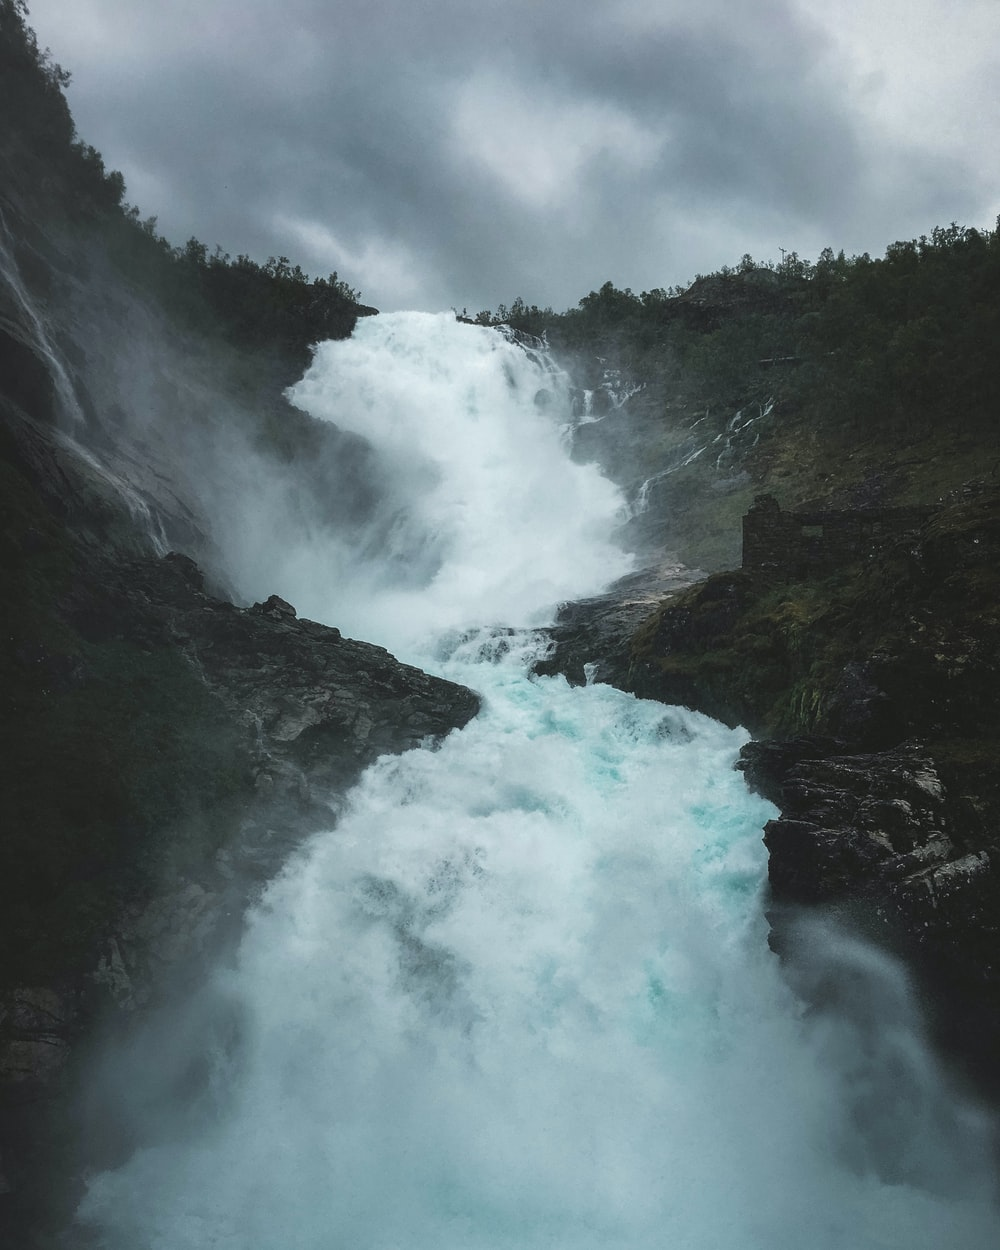 waterfalls under grey sky